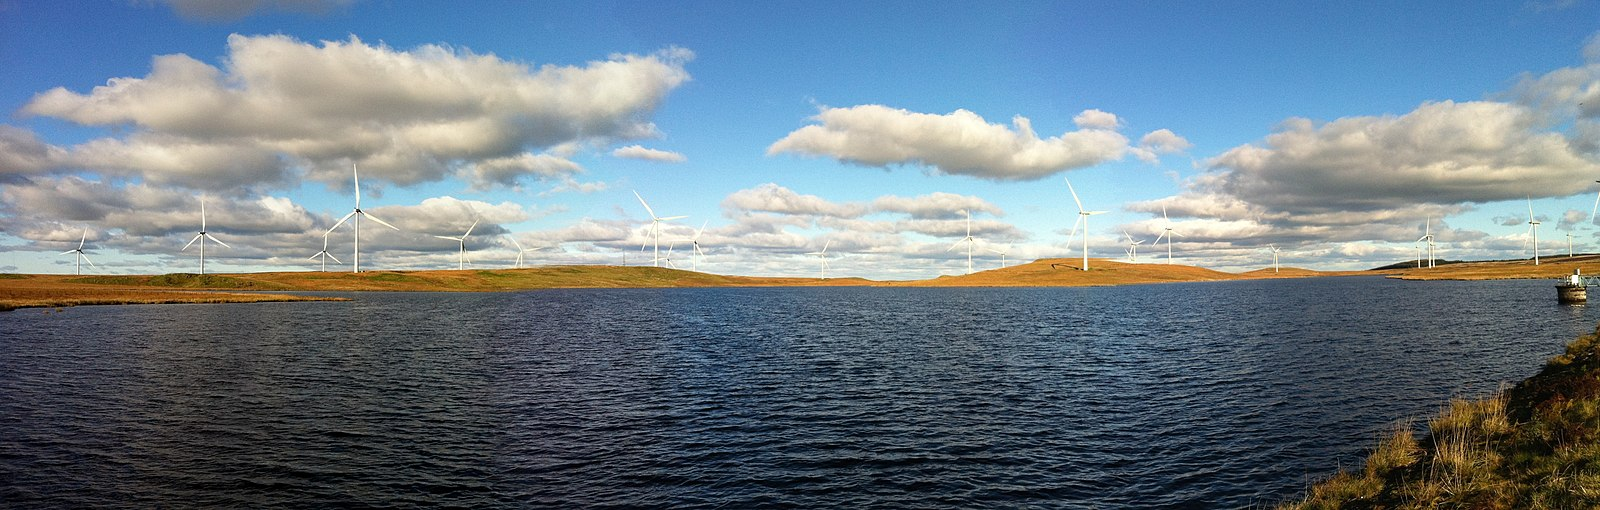 Wind Power In Scotland Wikiwand Sustainable Development Windpower South Ayrshire Council A Panoramic View Of The Whitelee Farm With Lochgoin Reservoir Foreground